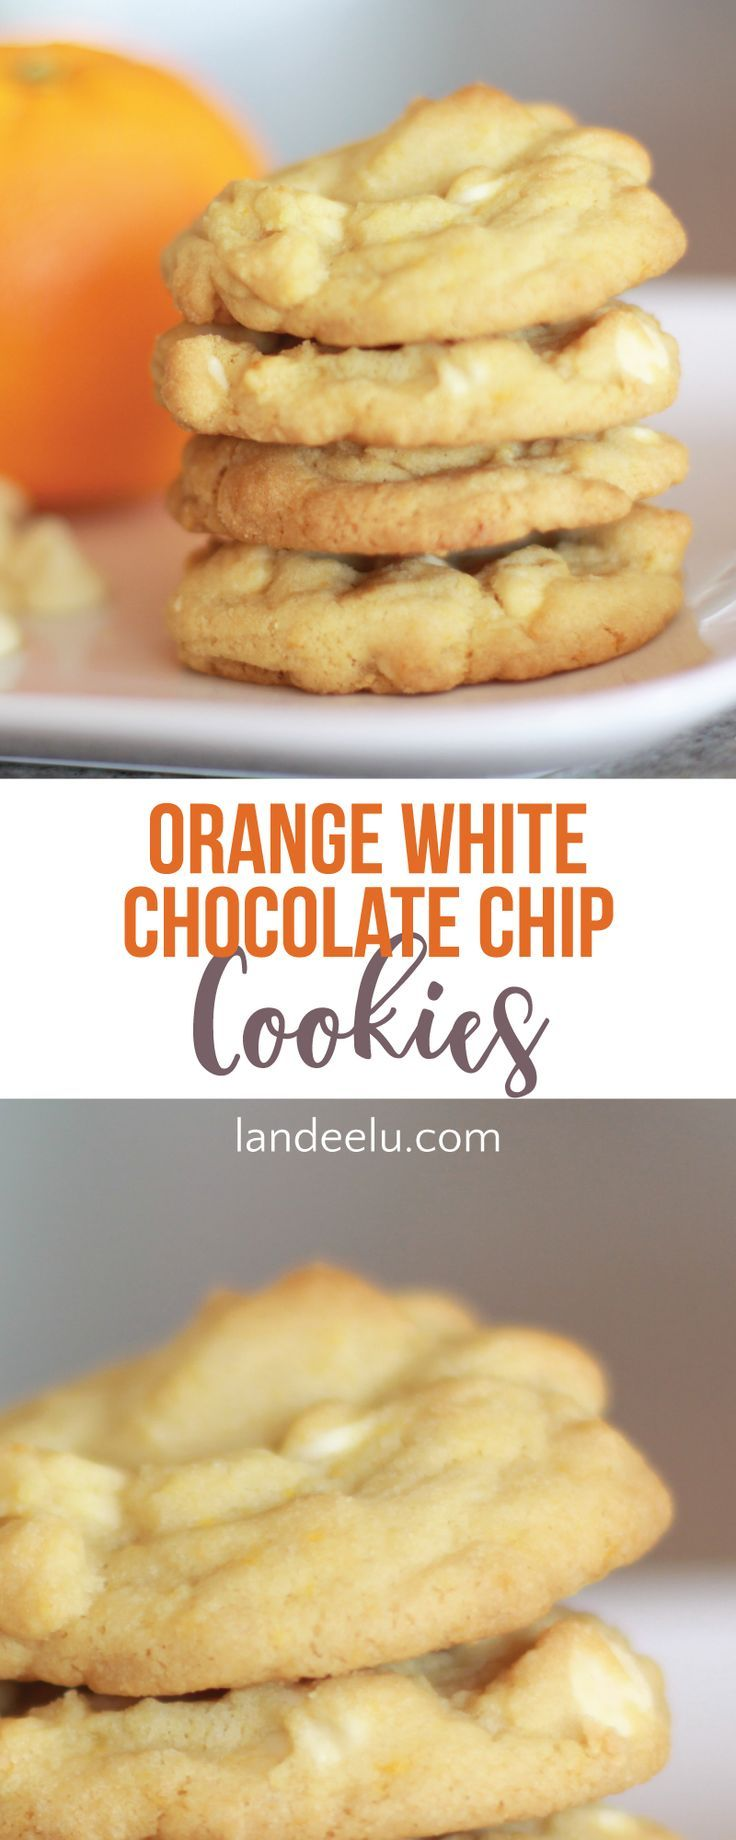 Best 20+ White chocolate chip cookies ideas on Pinterest | White ...